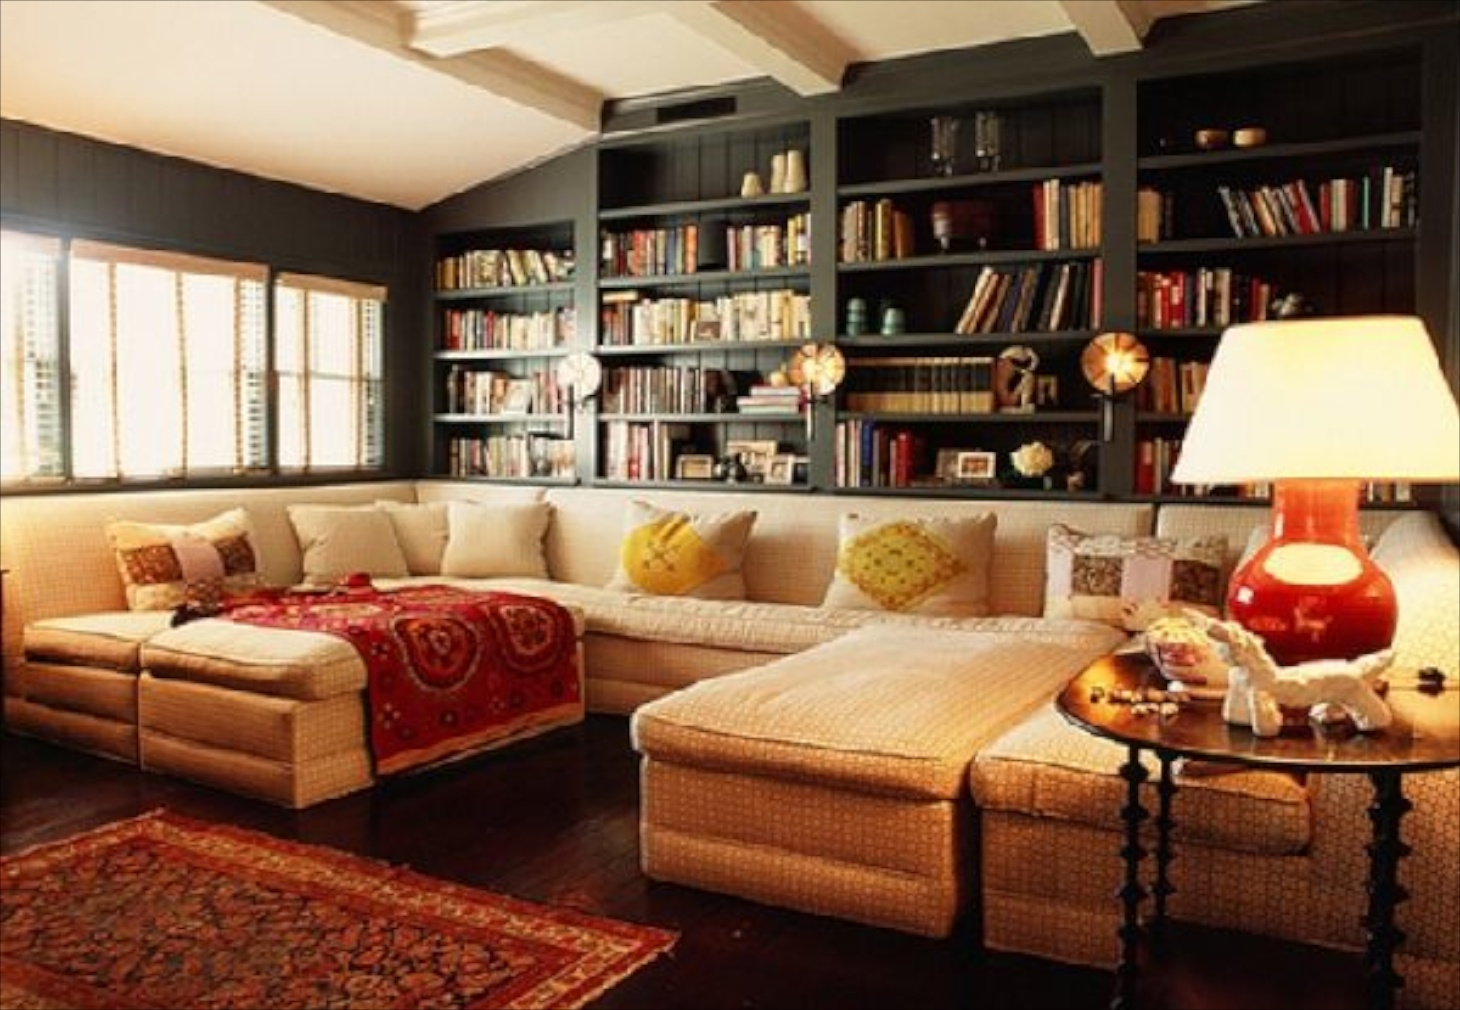 Cozy Living Room: 23_Sofas-and-Bookcase-Ideas-in-Cozy-Living-Room-Design